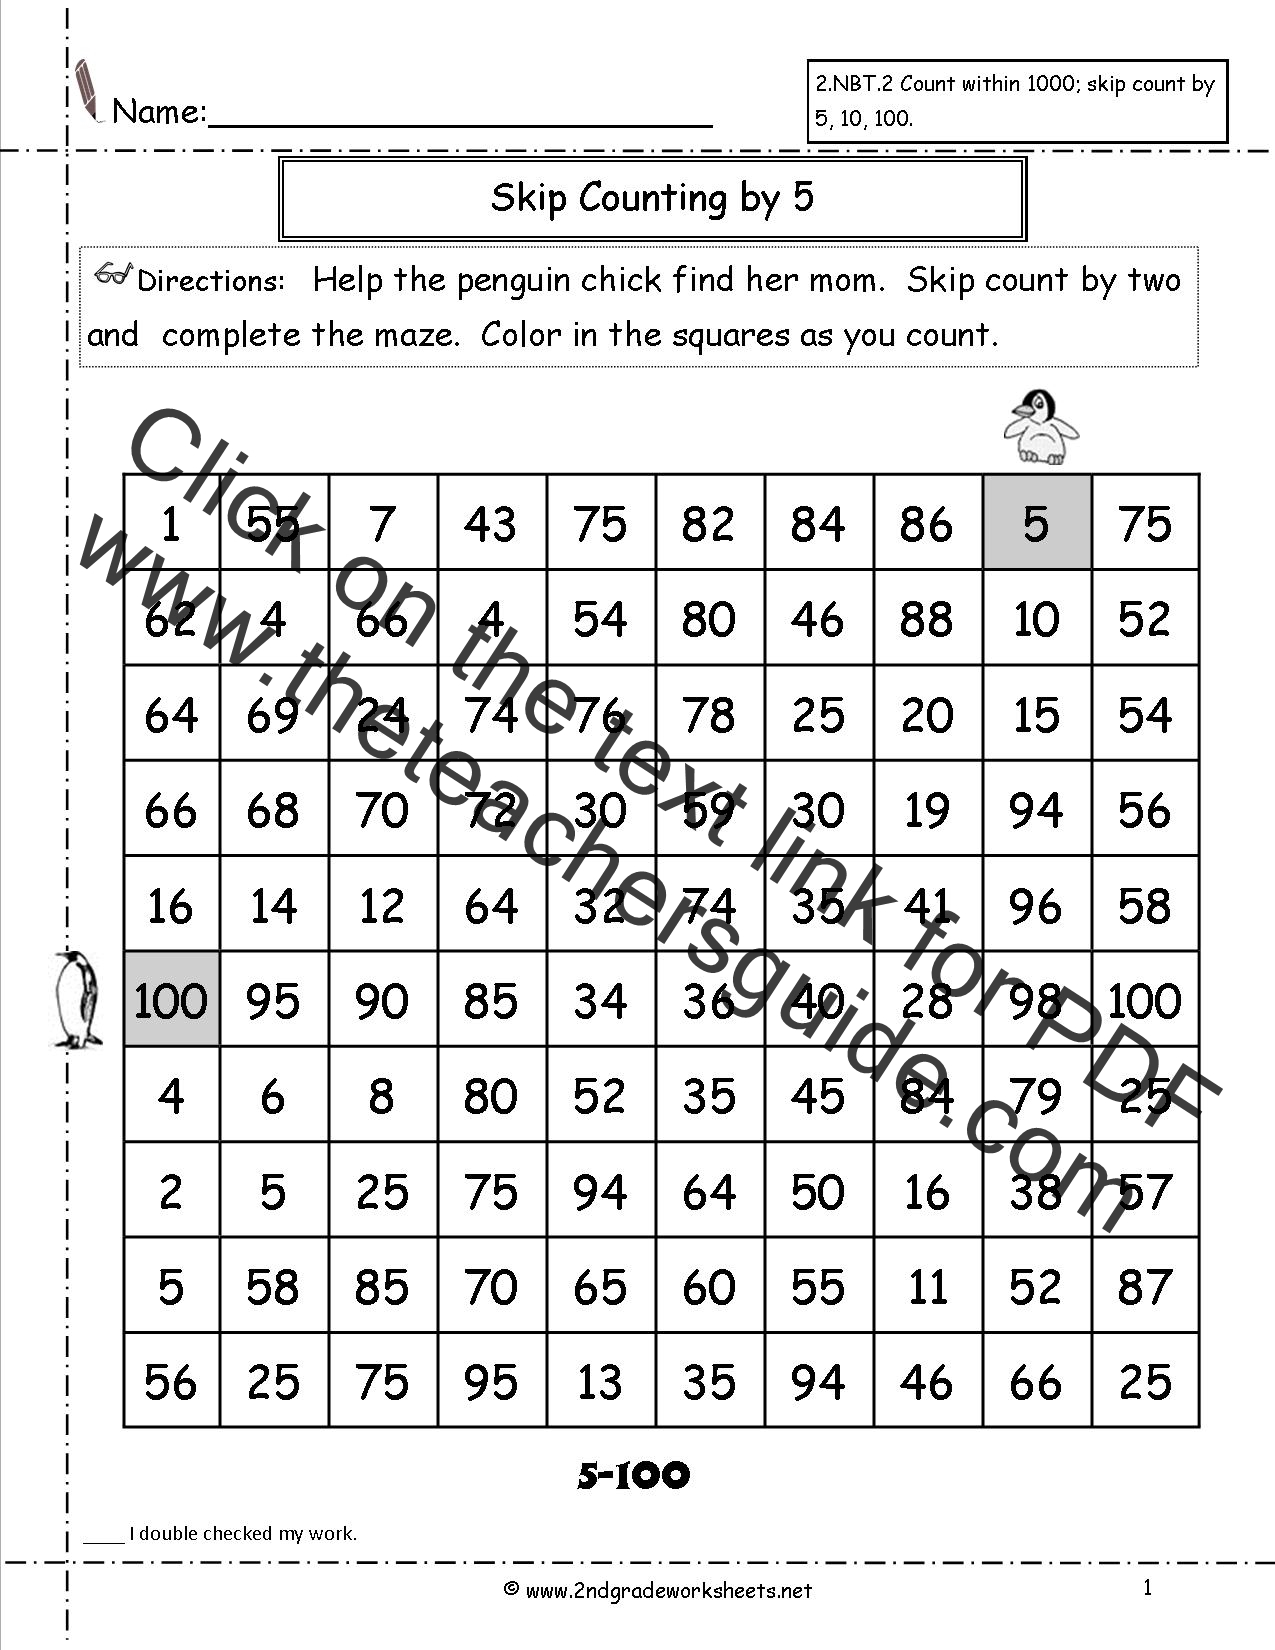 Worksheet Skip Counting Free Worksheets free skip counting worksheets by 5 maze